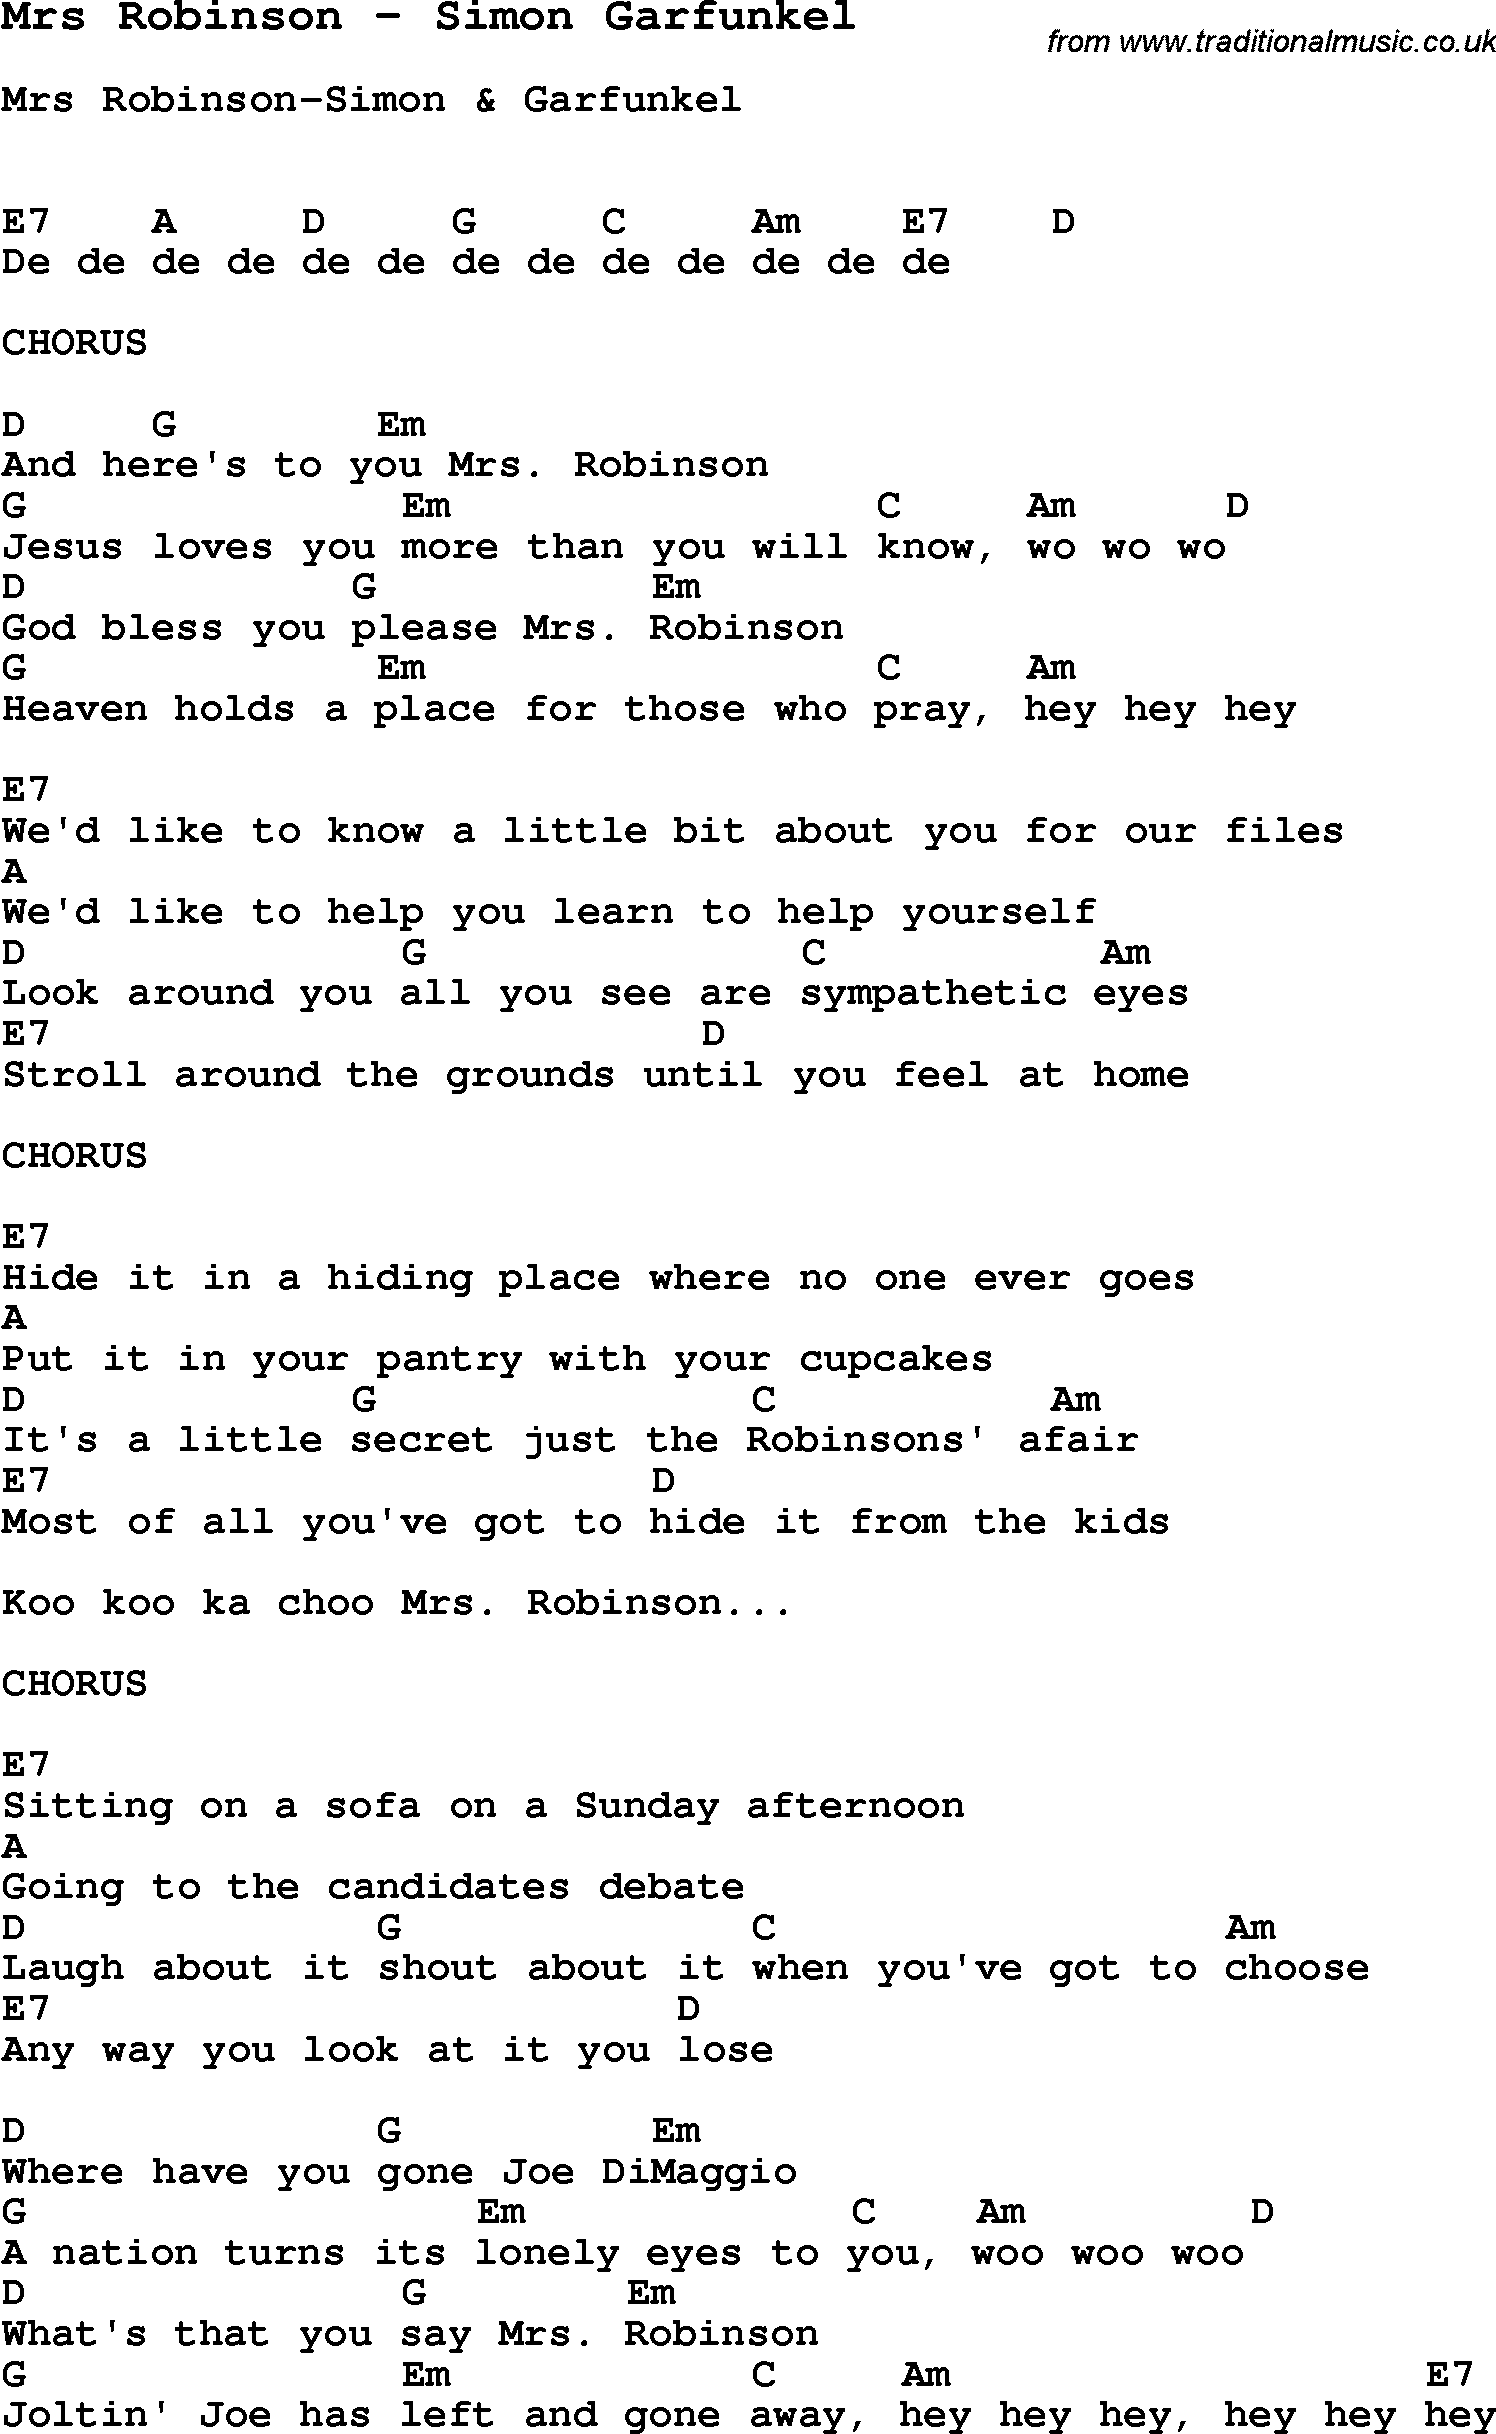 Song Mrs Robinson By Simon Garfunkel Lyric For Vocal Performance Plus Accompaniment Chords Ukulele Guitar Banjo Etc